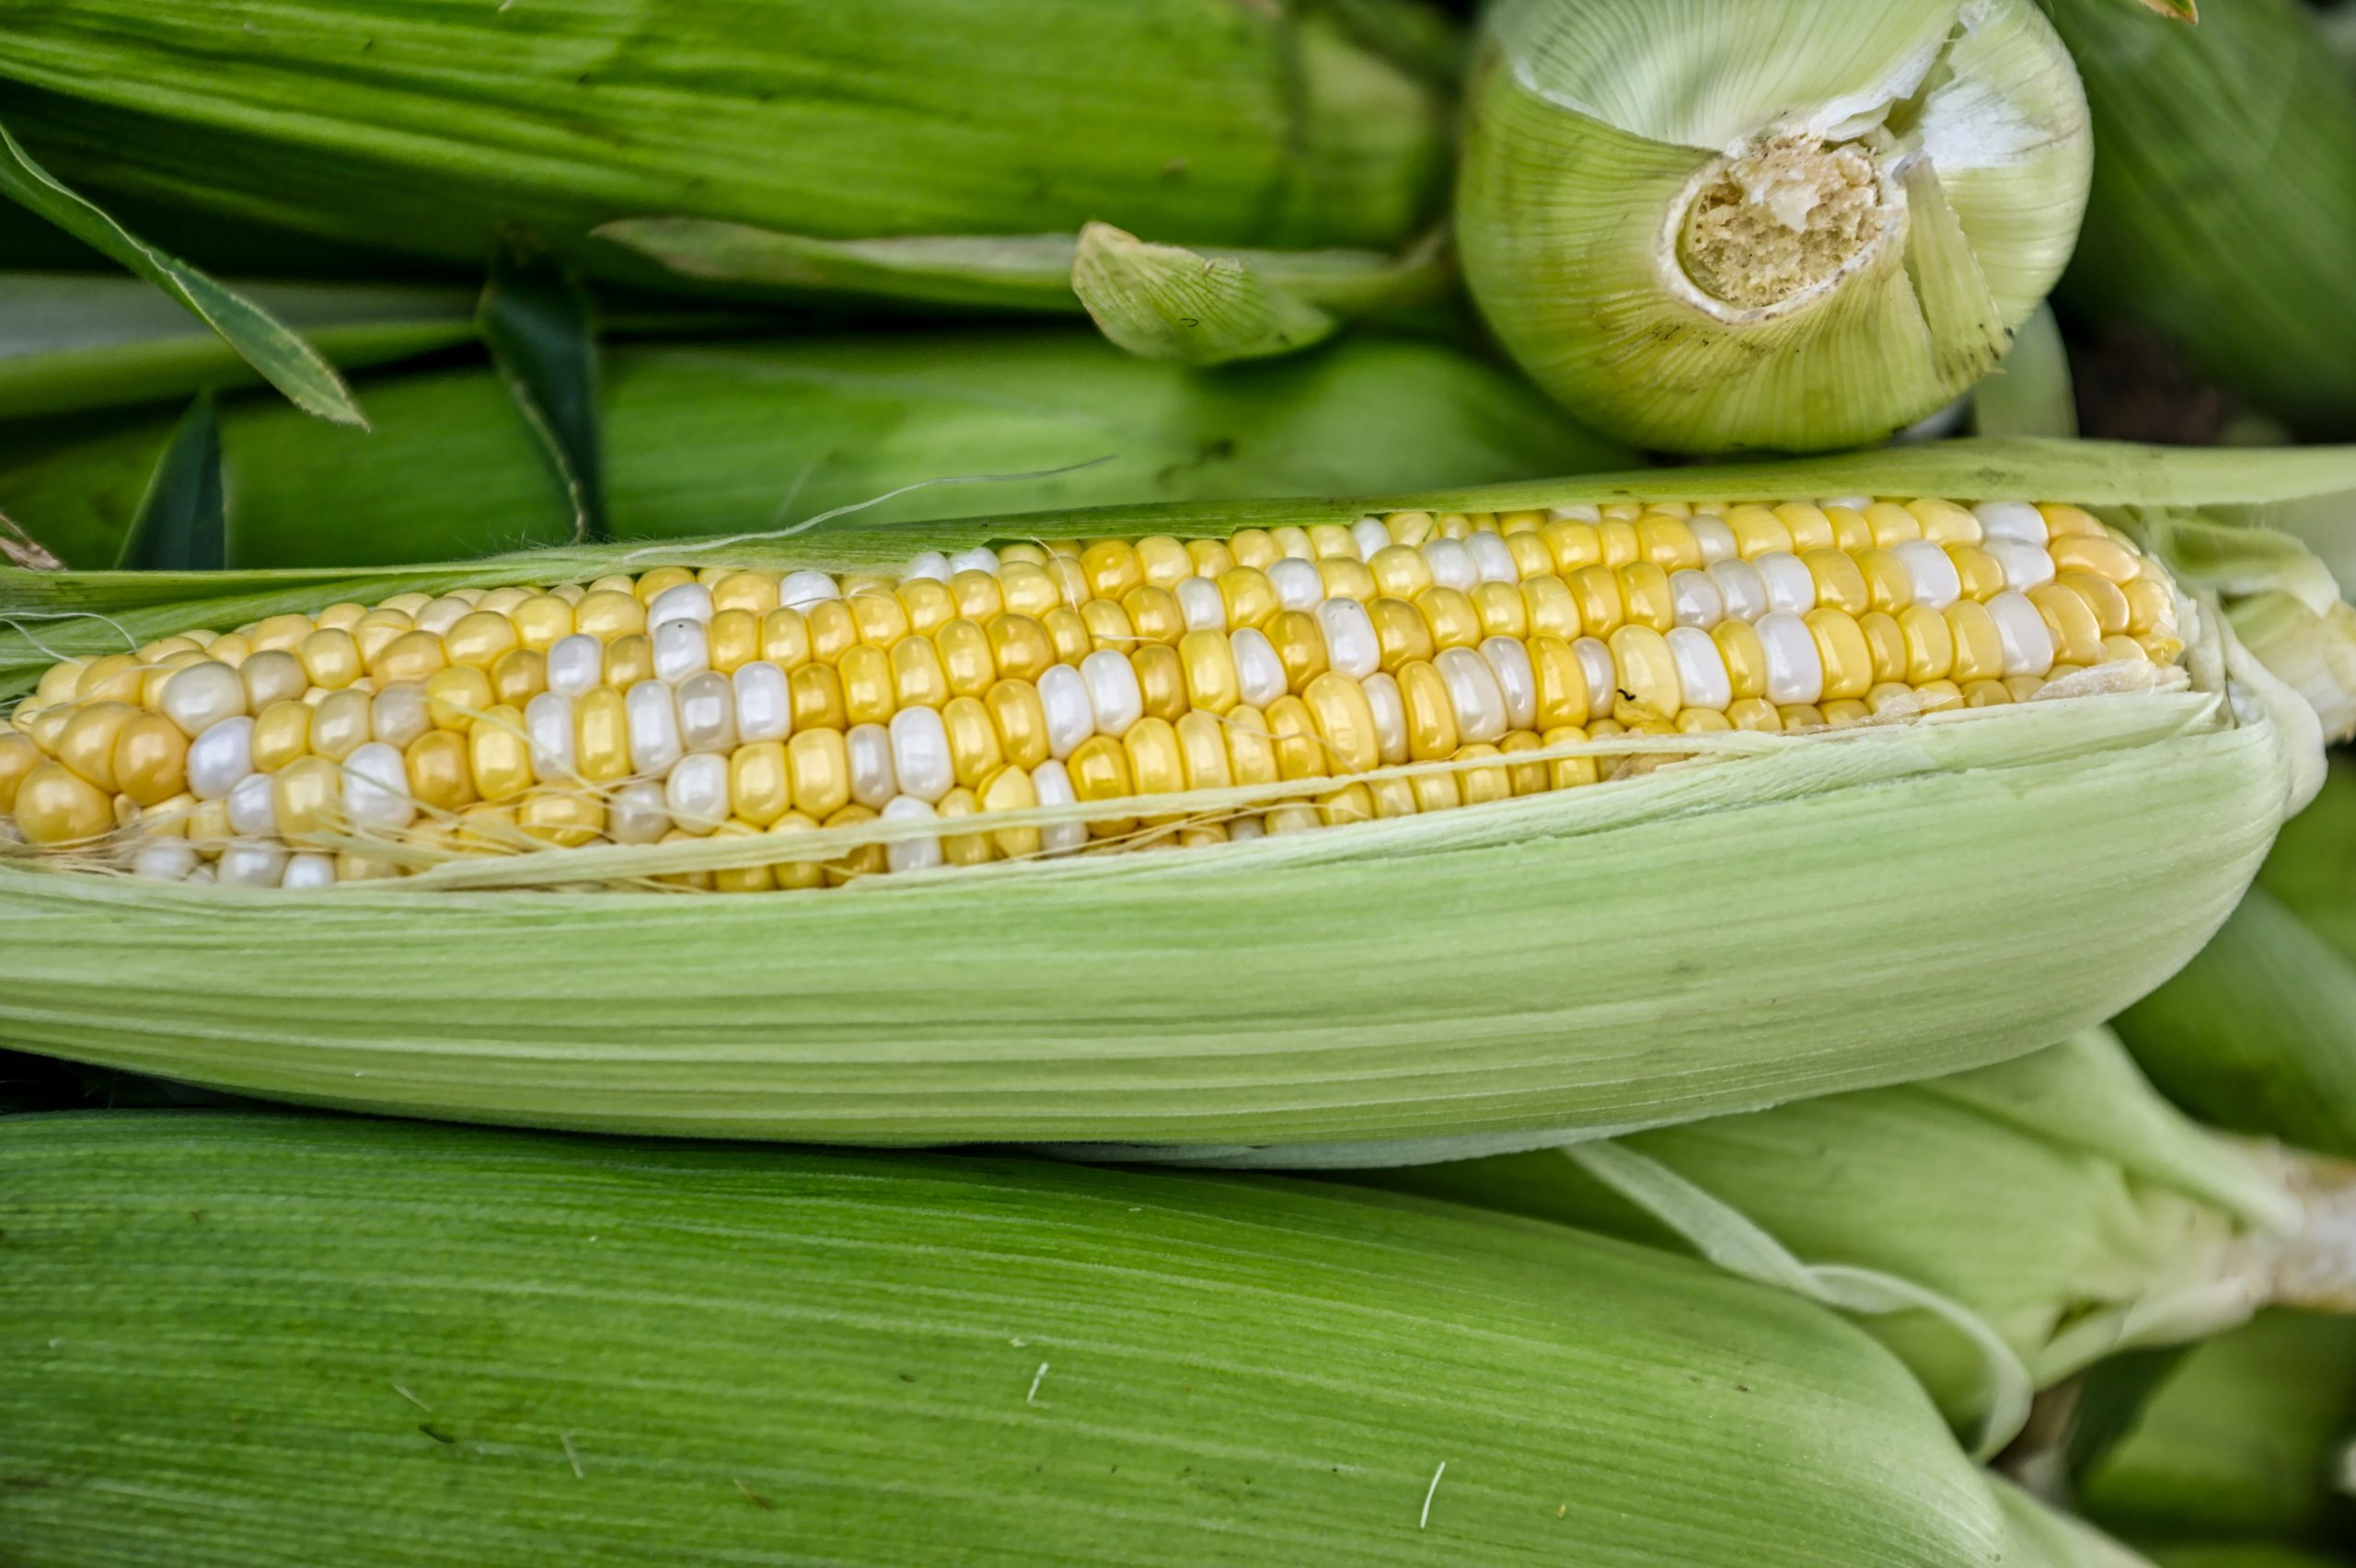 GMO – Dispelling The Myths About GM Food And Crops